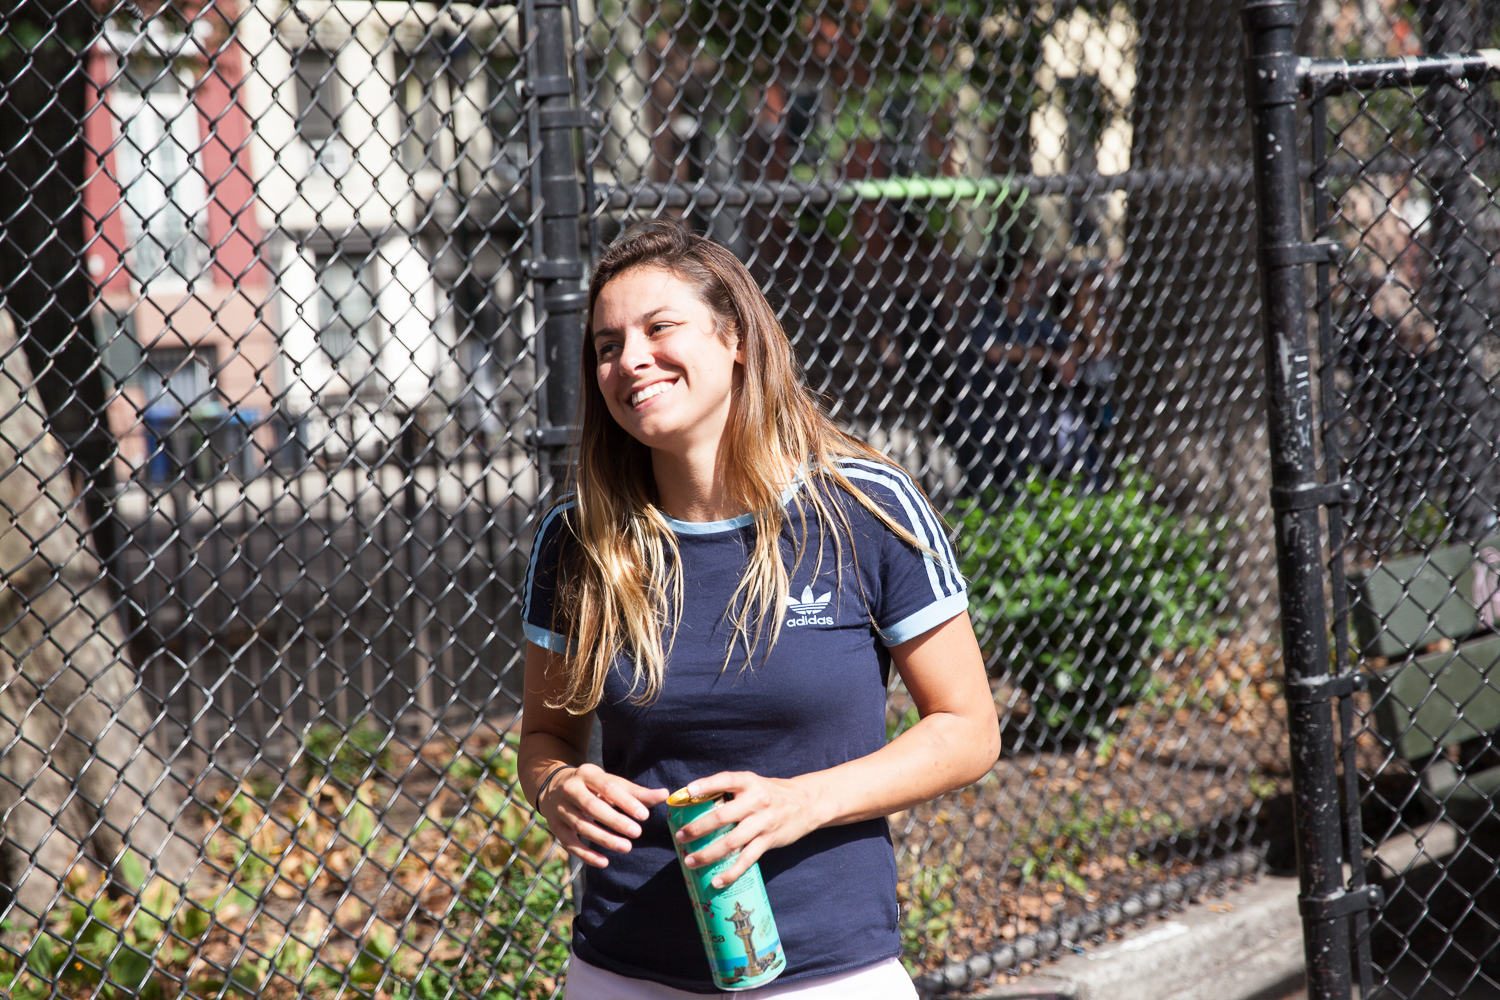 Nora Vasconcellos showing up and taking advantage of the free Arizona Iced Teas.